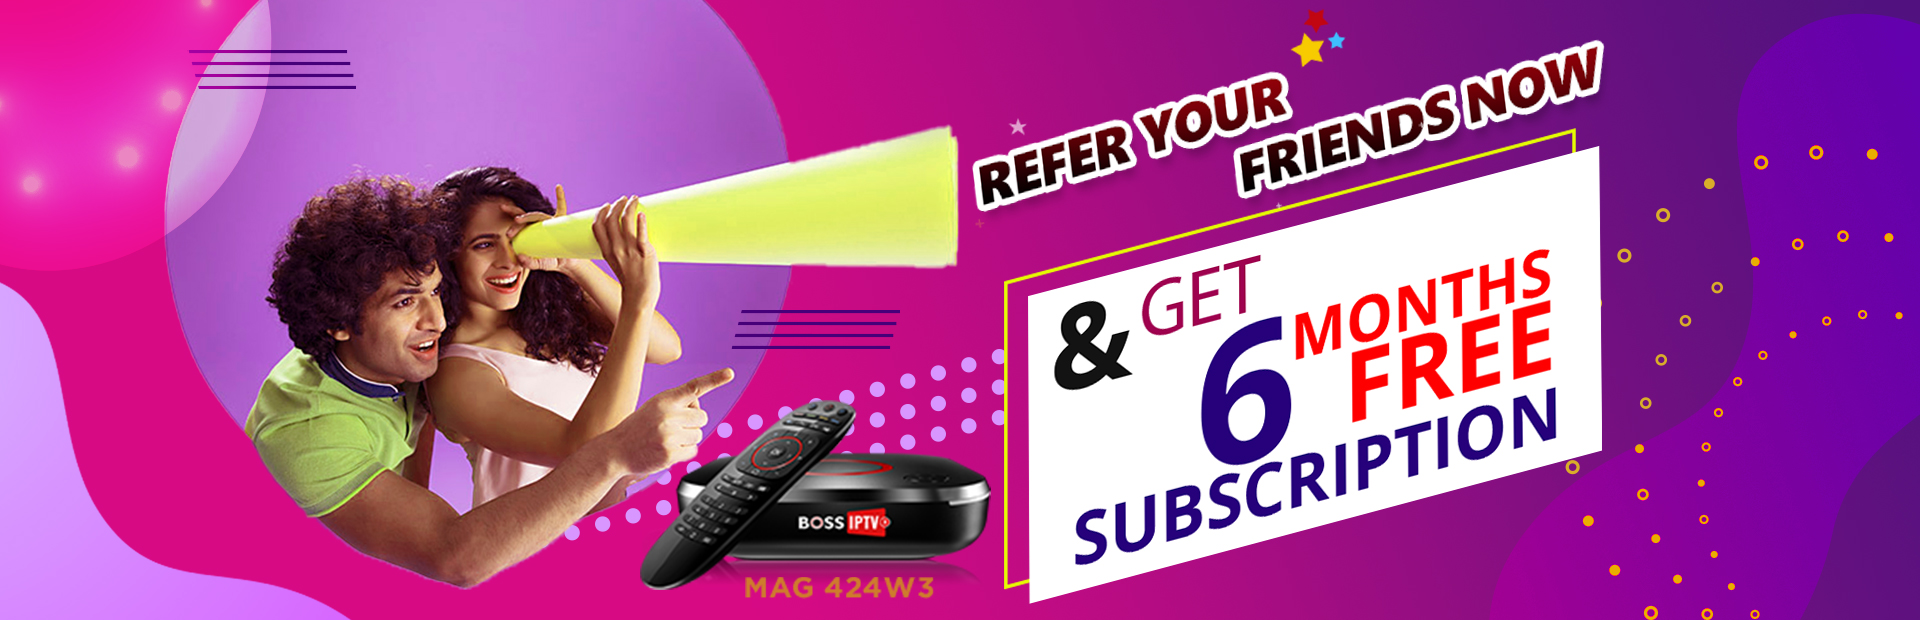 Refer a Friend & get 6 Months Subscription Free